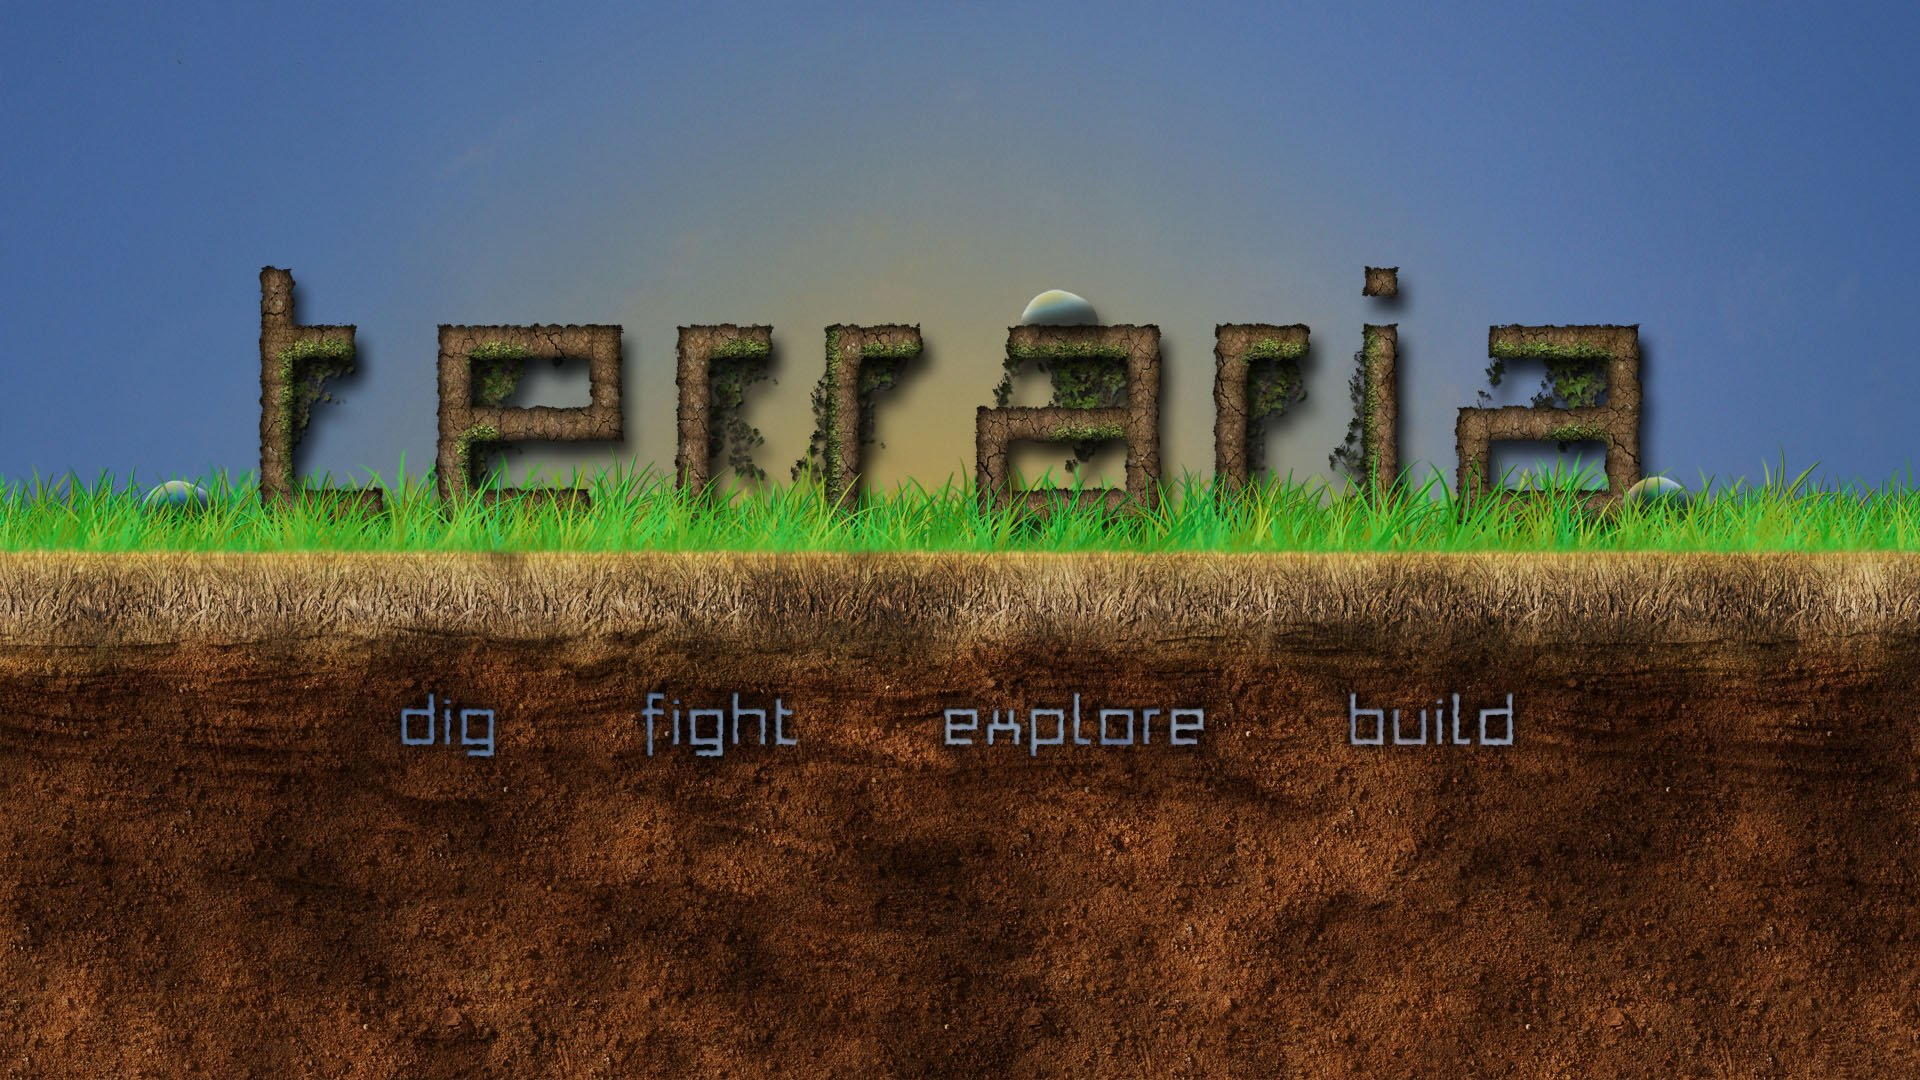 Download Terraria HD Wallpapers